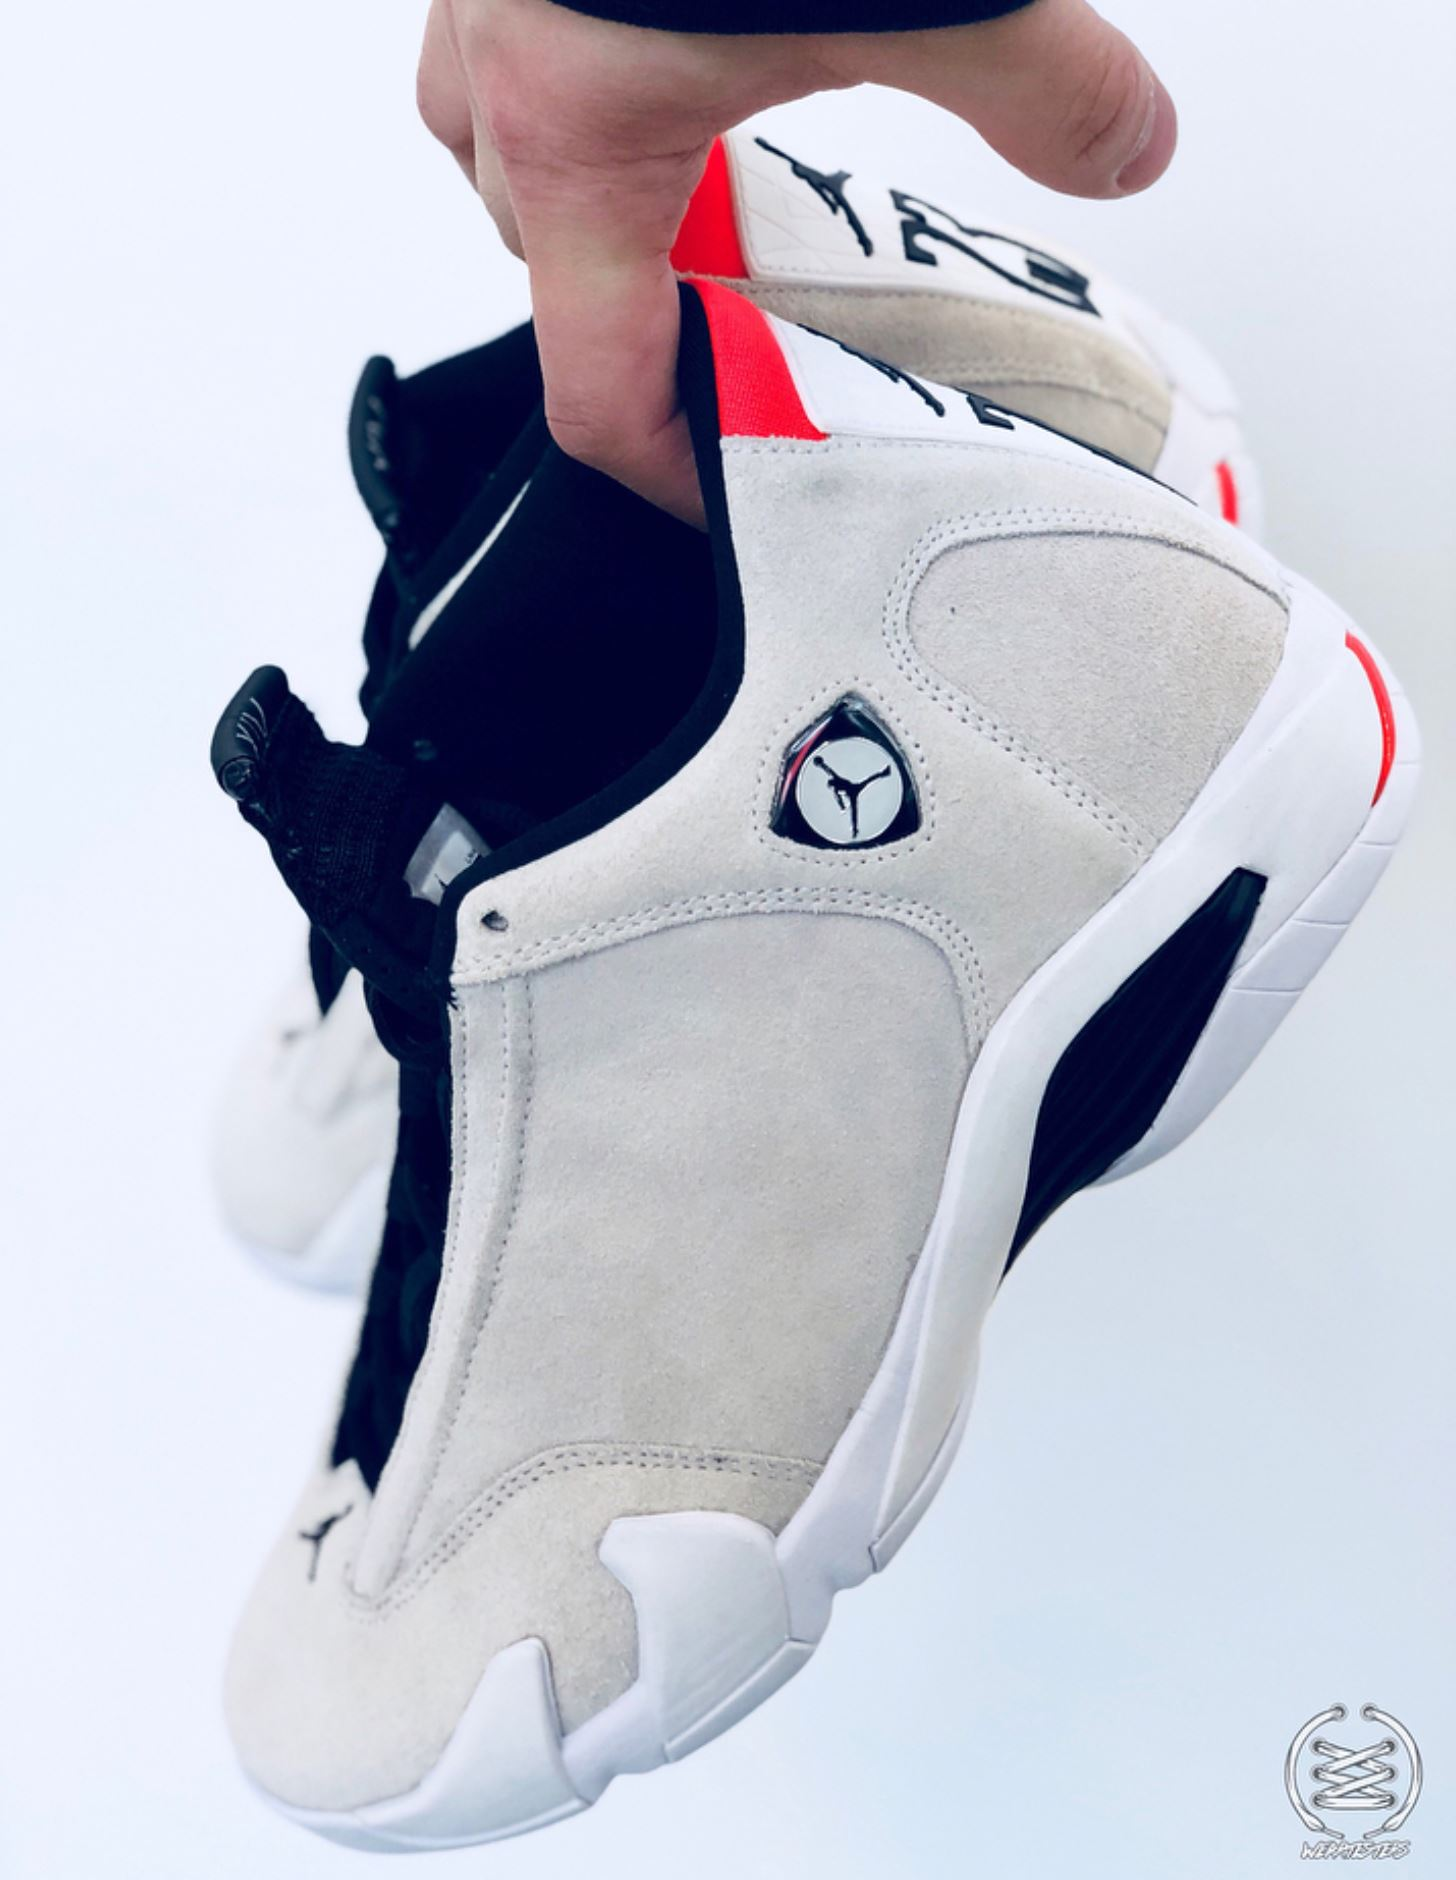 new product 16542 76ce3 The Air Jordan 14 'Desert Sand' Releases Next Month ...